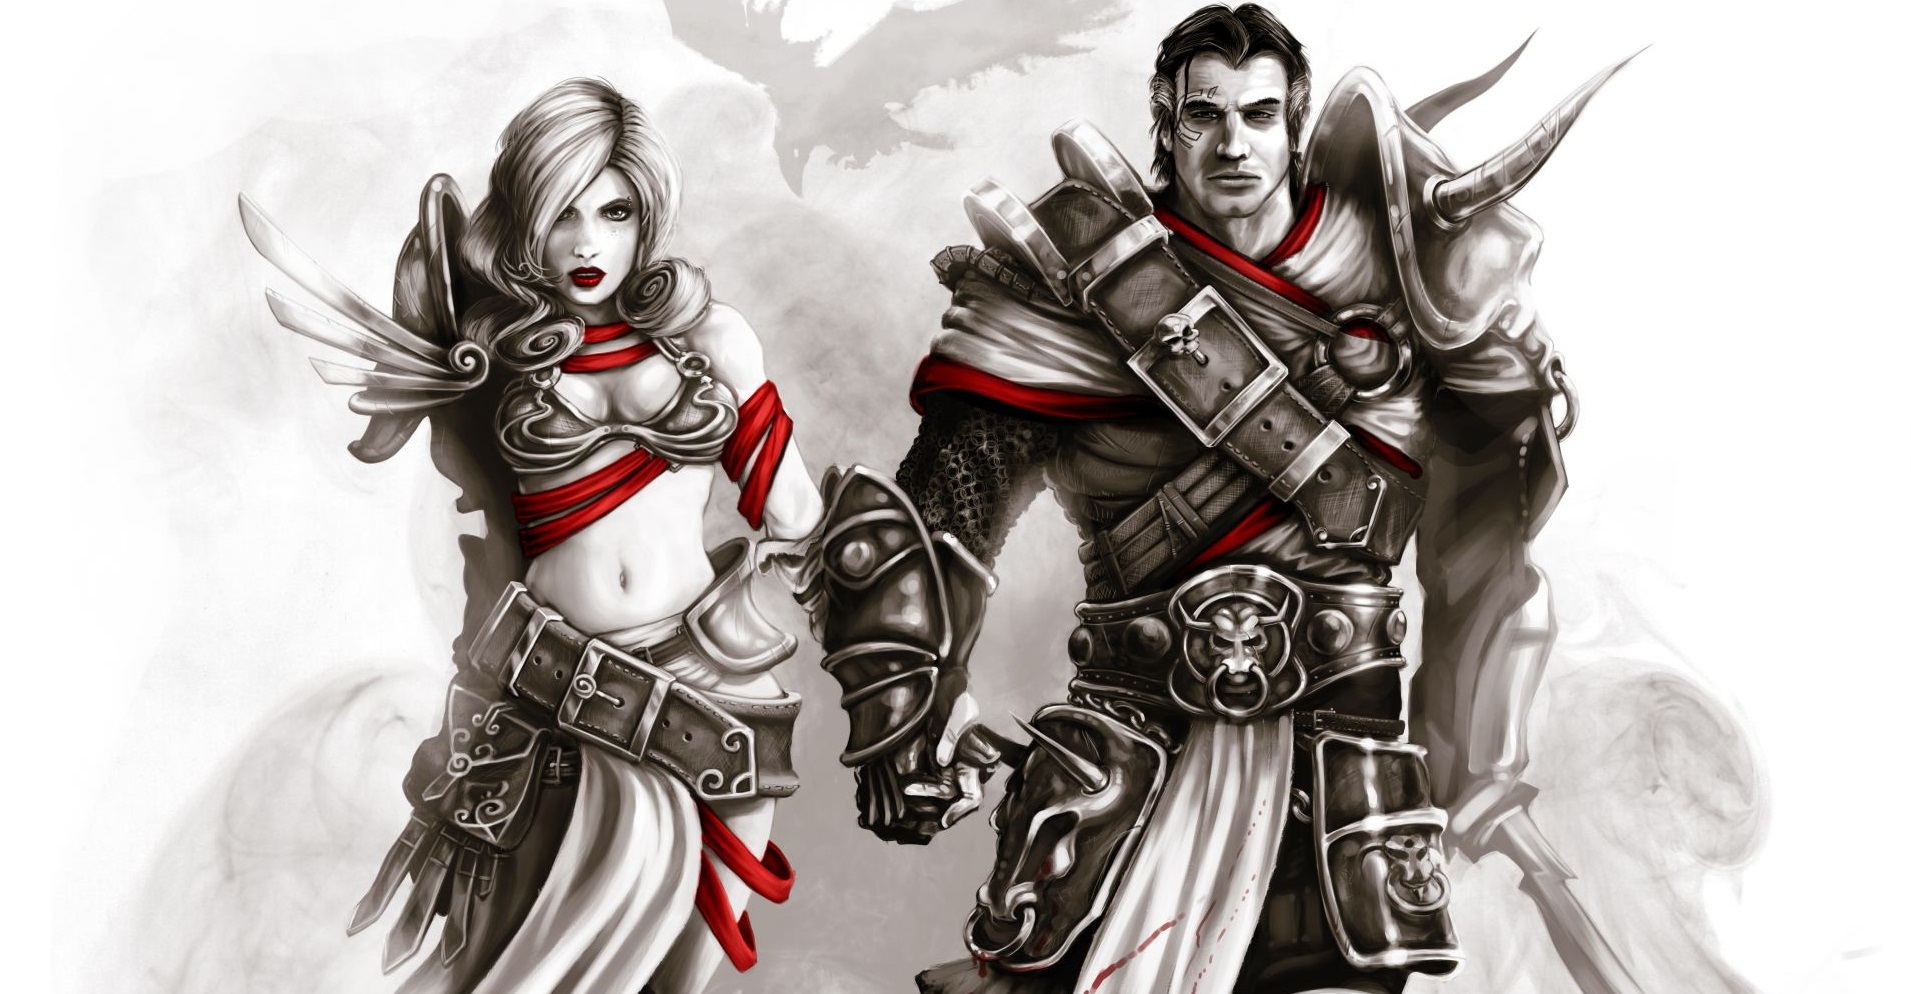 Divinity: Original Sin 2 heads to Kickstarter for 'something even bigger, better, and more engaging'